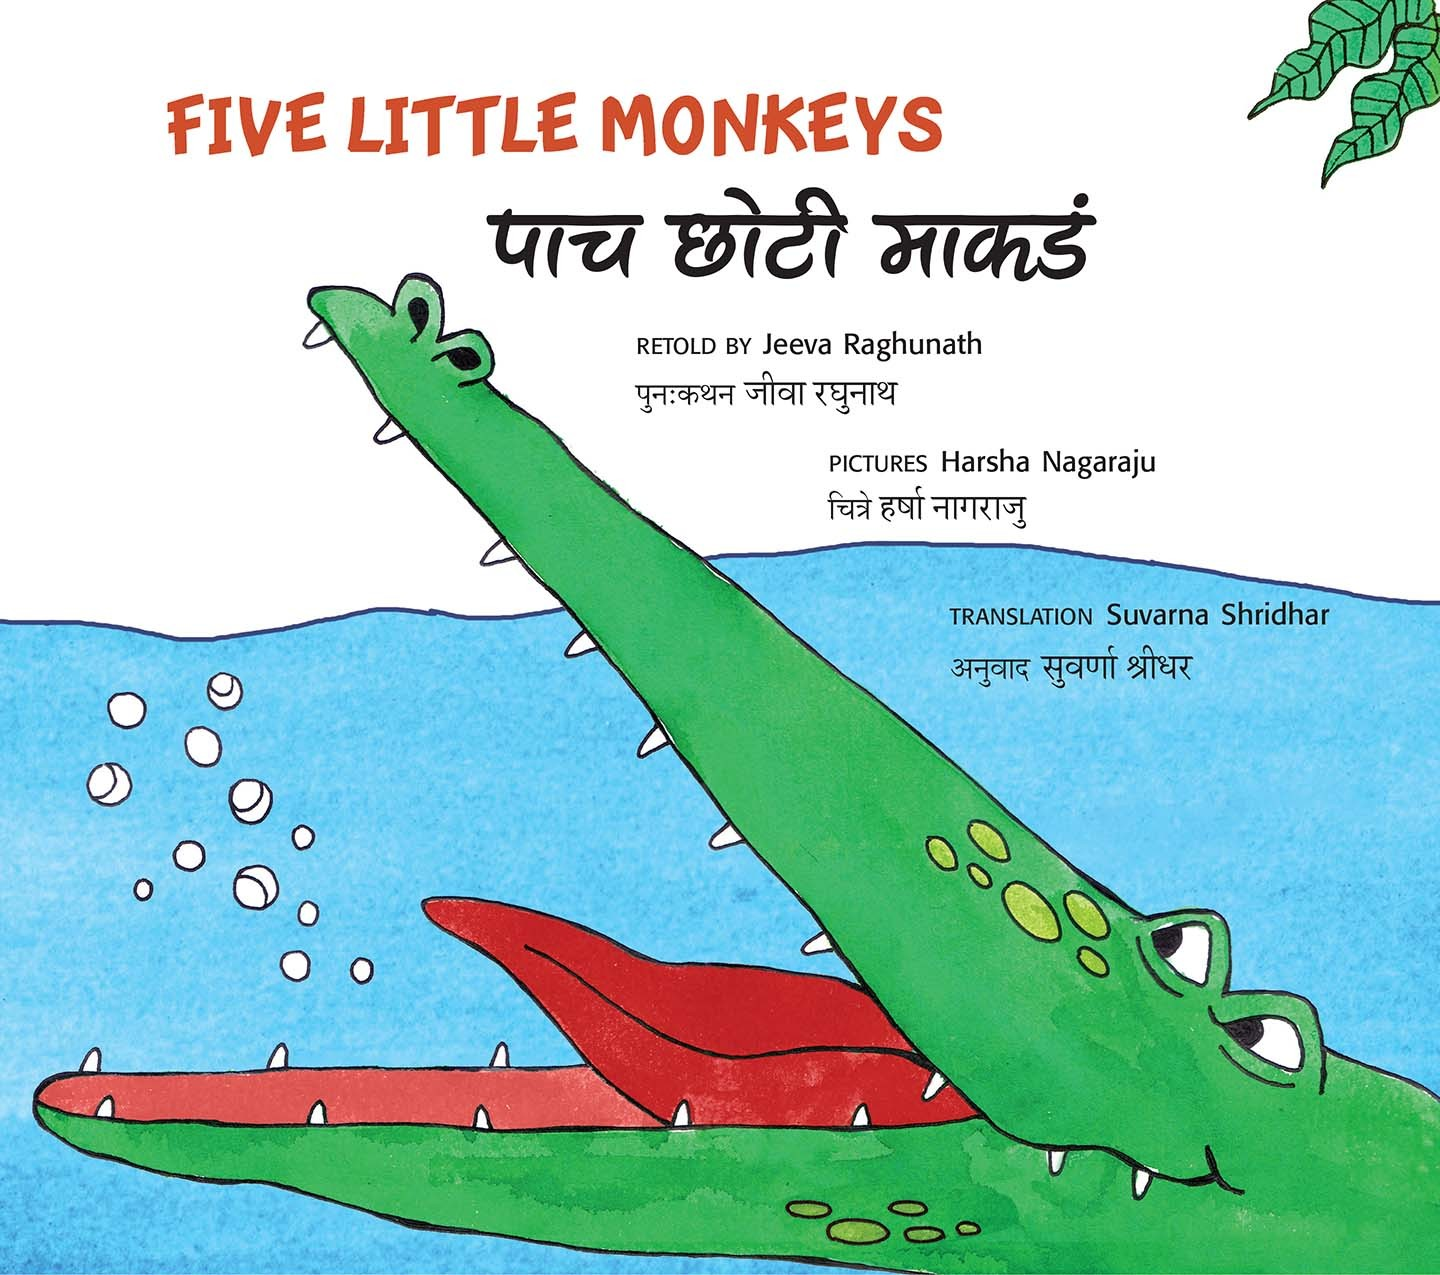 Five Little Monkeys/Paach Chhoti Maakad (English-Marathi)